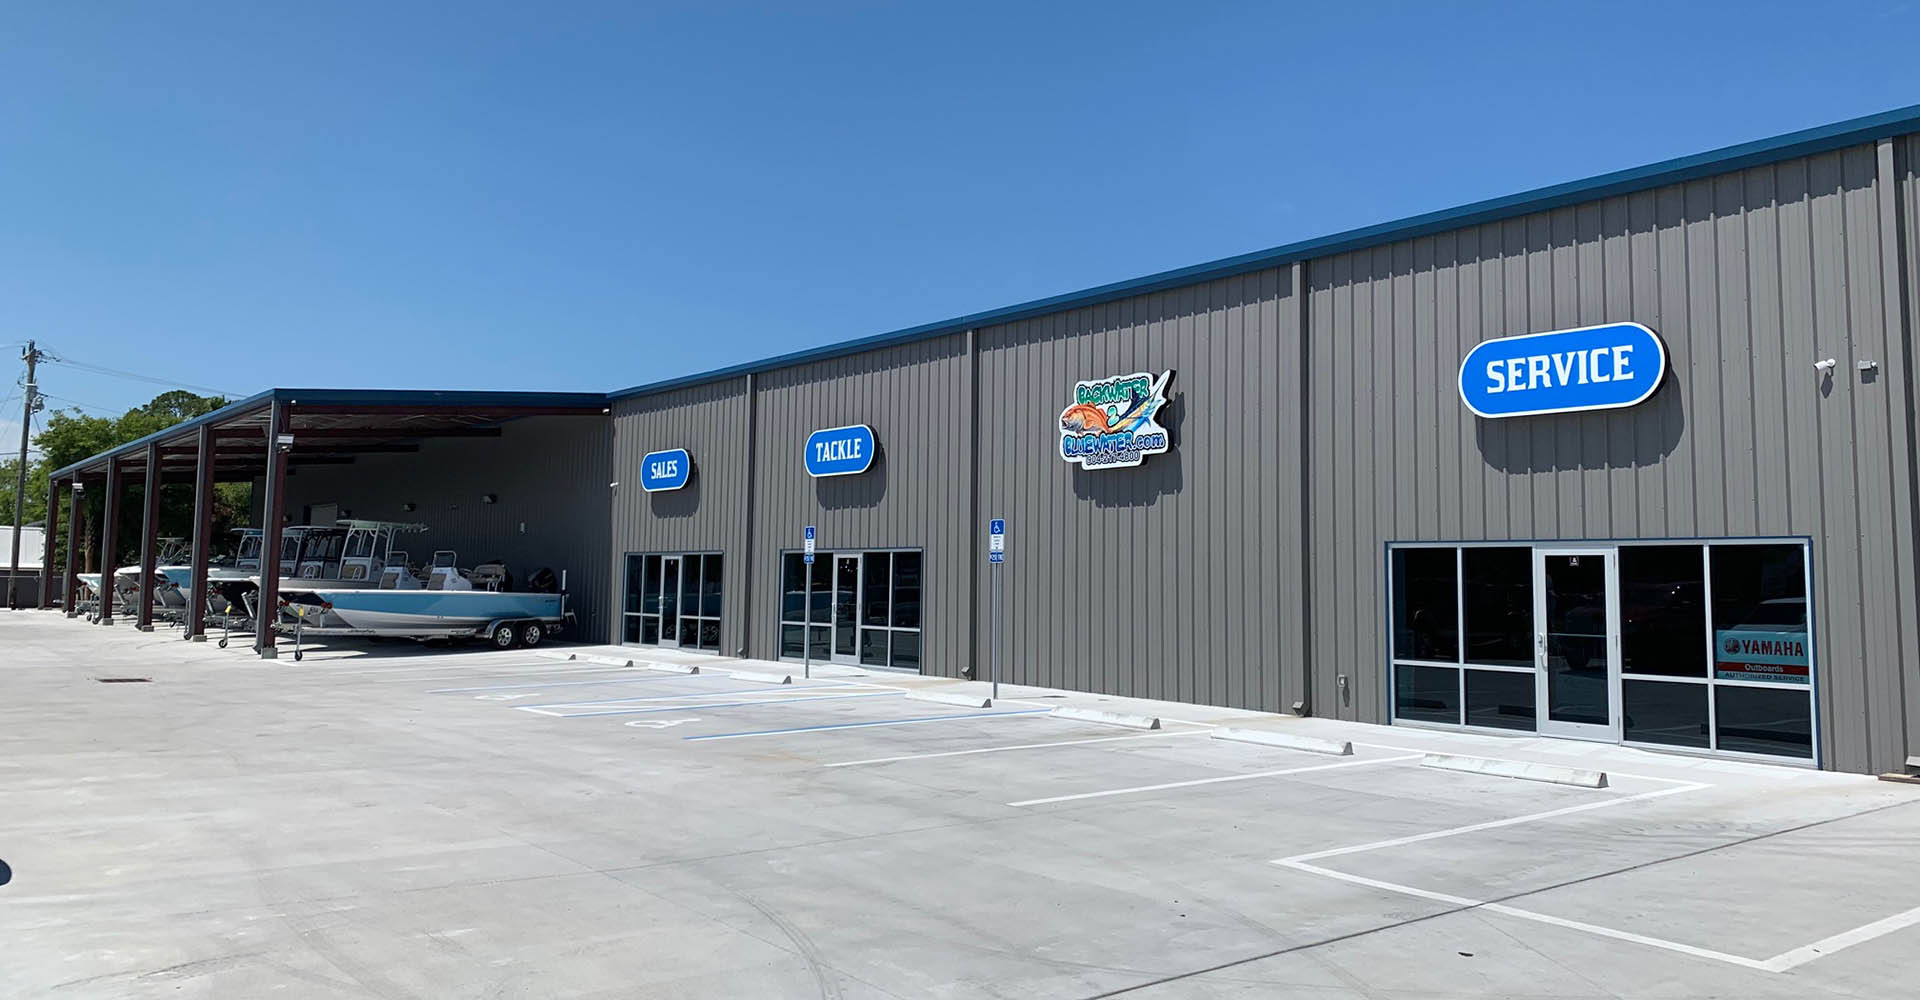 Store front image for the dealership located at St. Augustine, FL